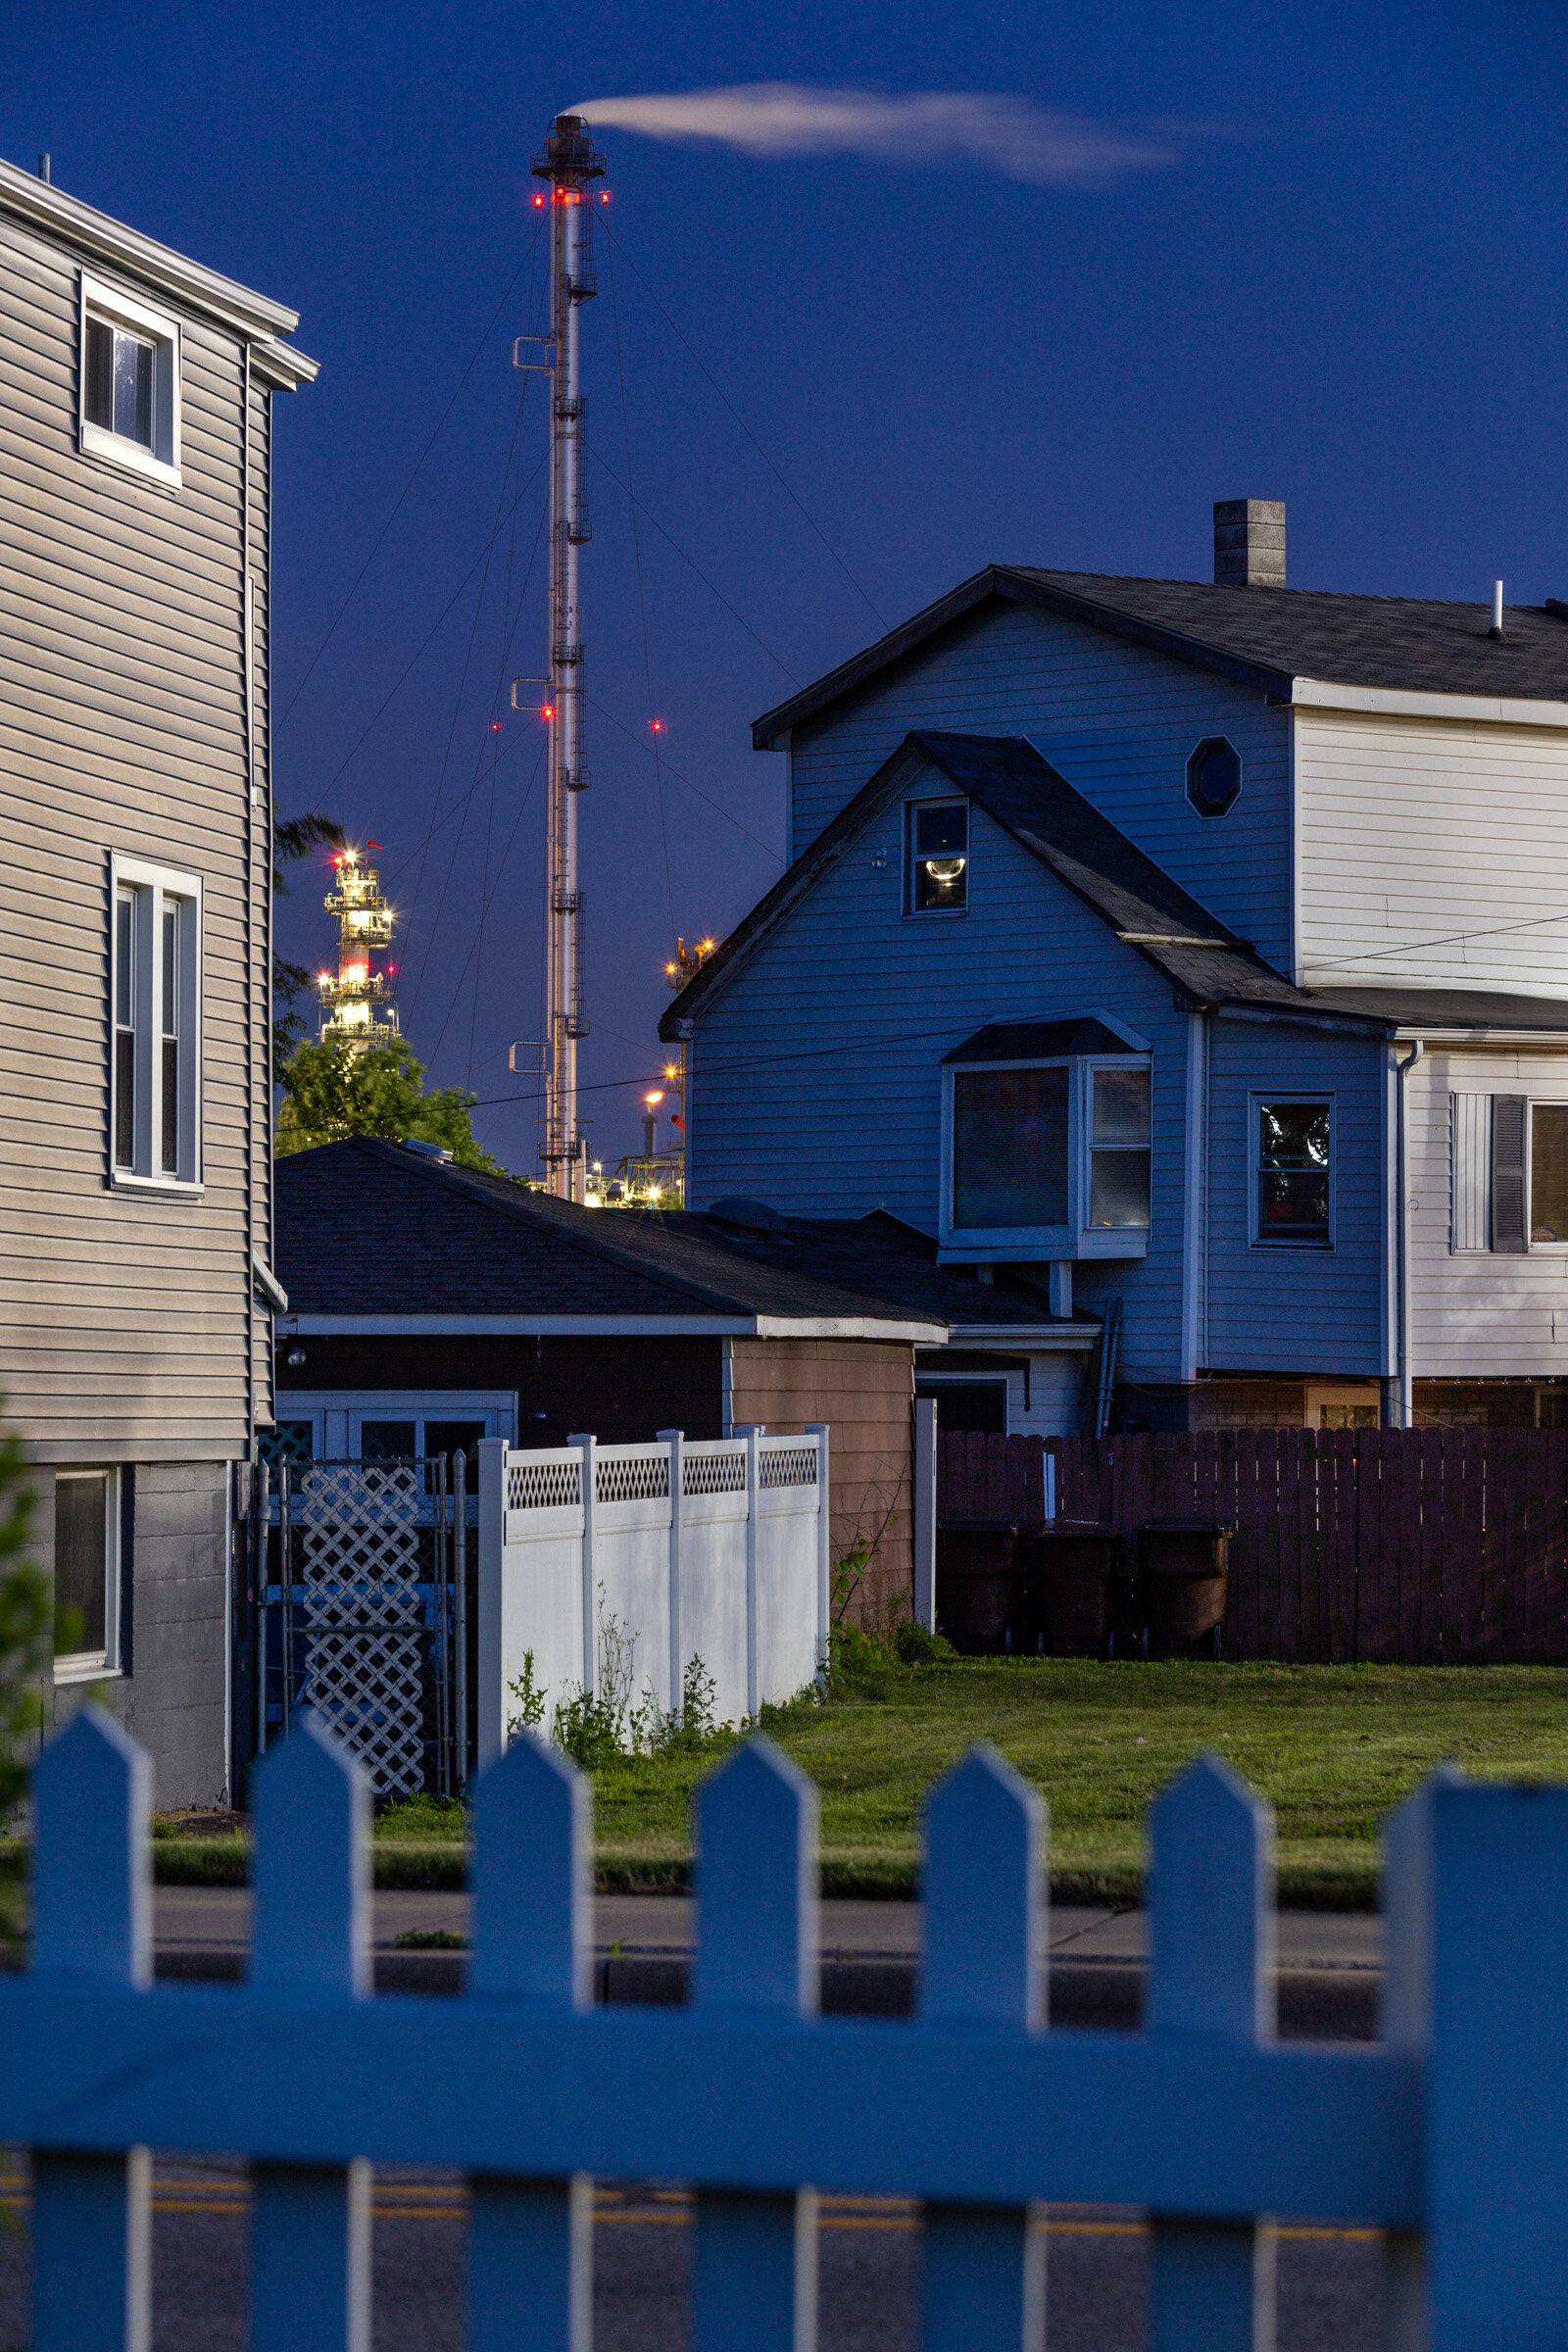 Figure 2. Whiting Houses with Refinery at Dusk, July 2019. Photograph by Matthew Kaplan.